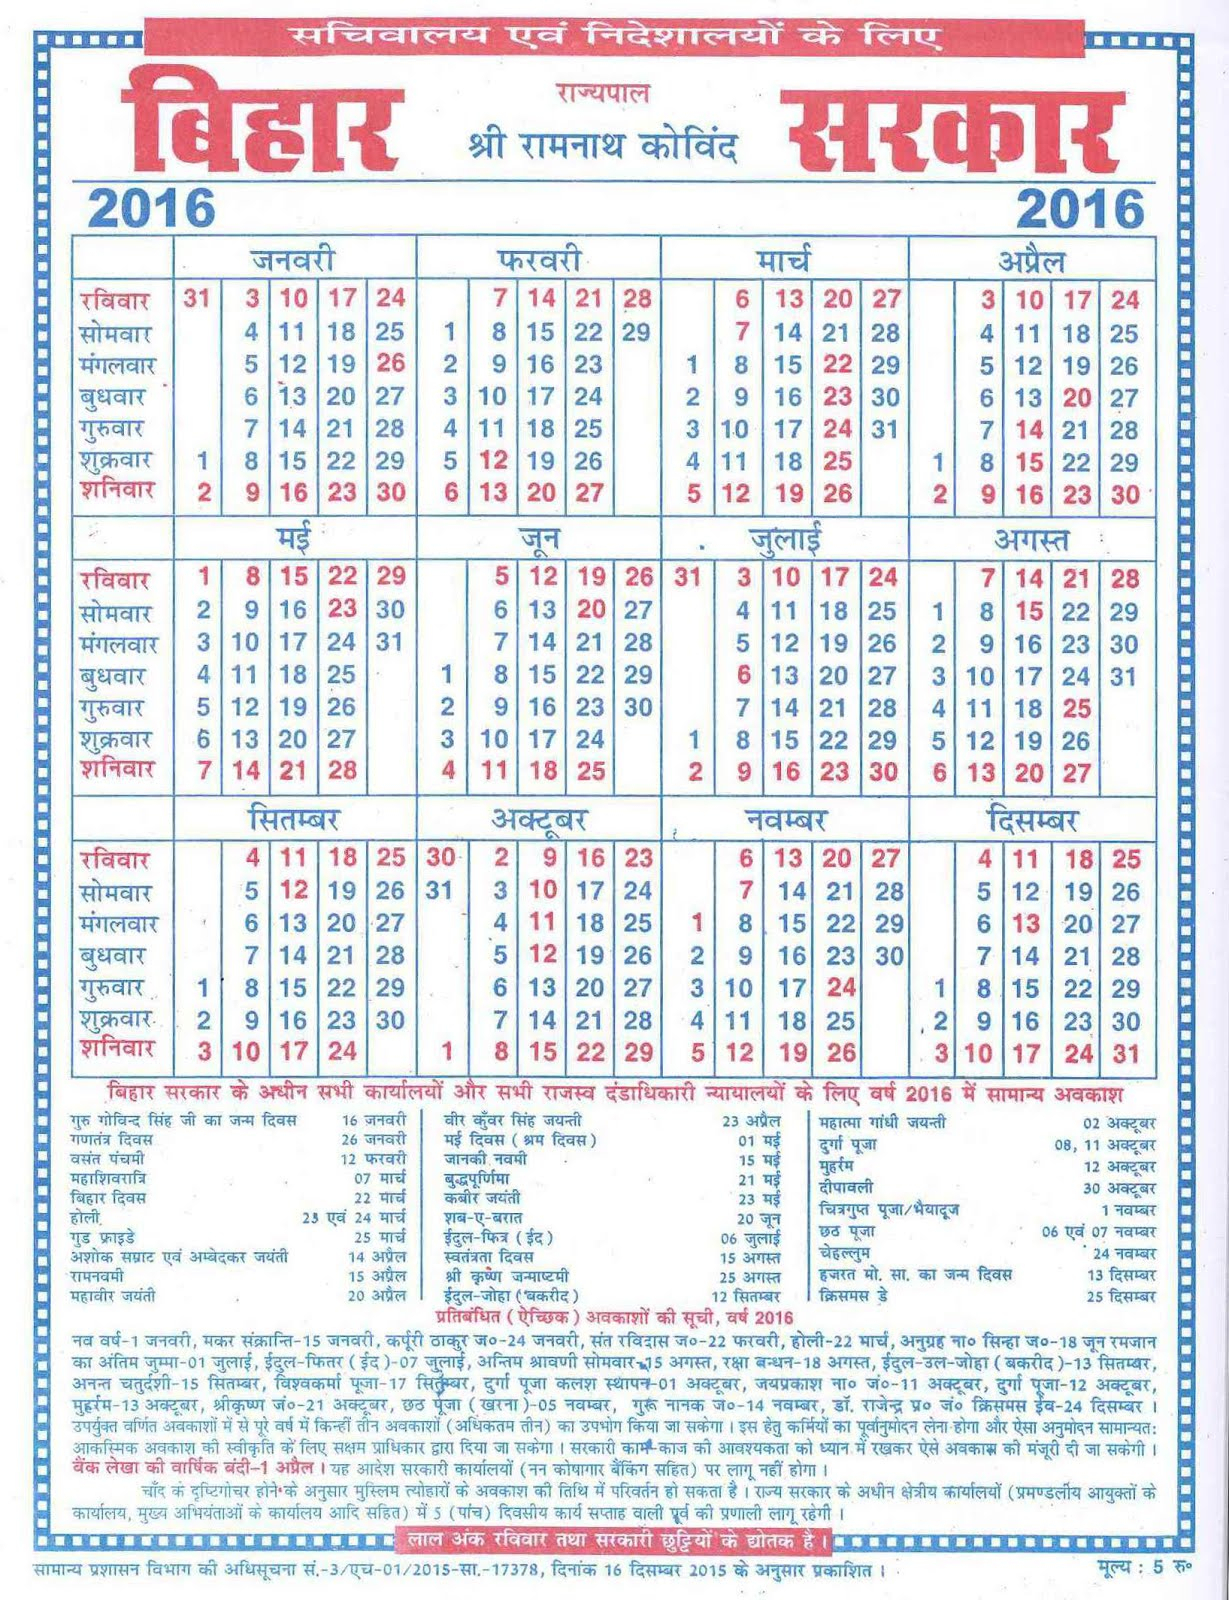 Bihar Government Calendar 2016 Download throughout Bihar Sarkar Calendra